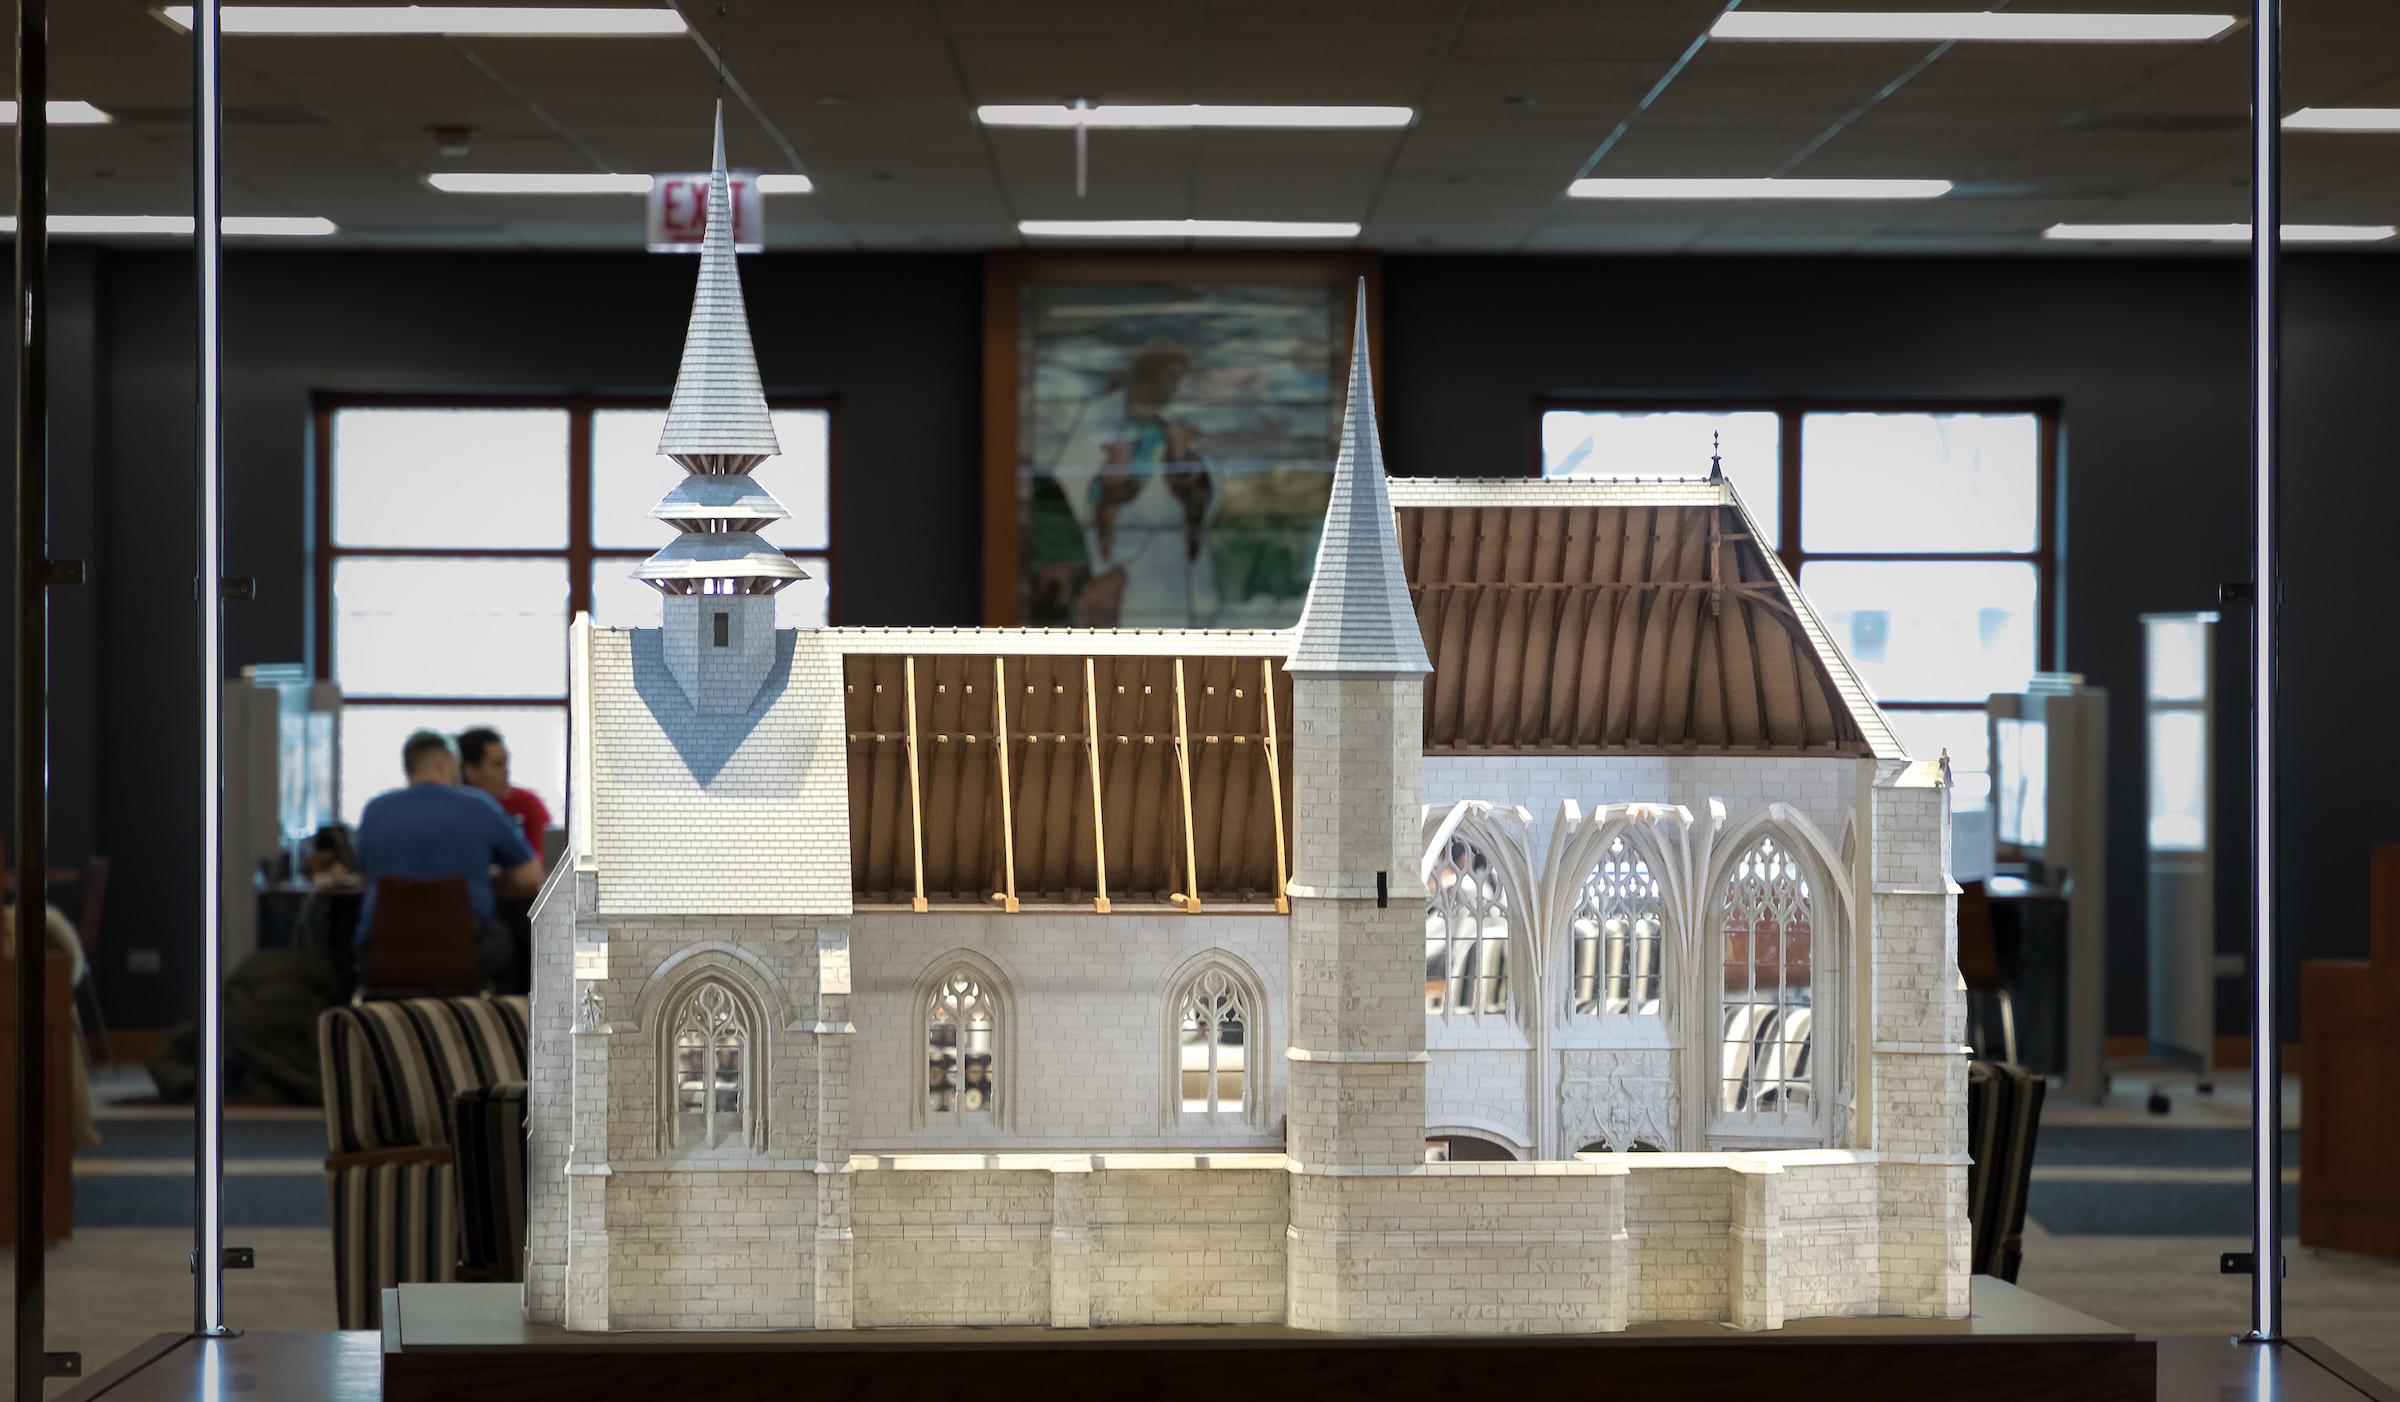 Image of scale model of Folleville church